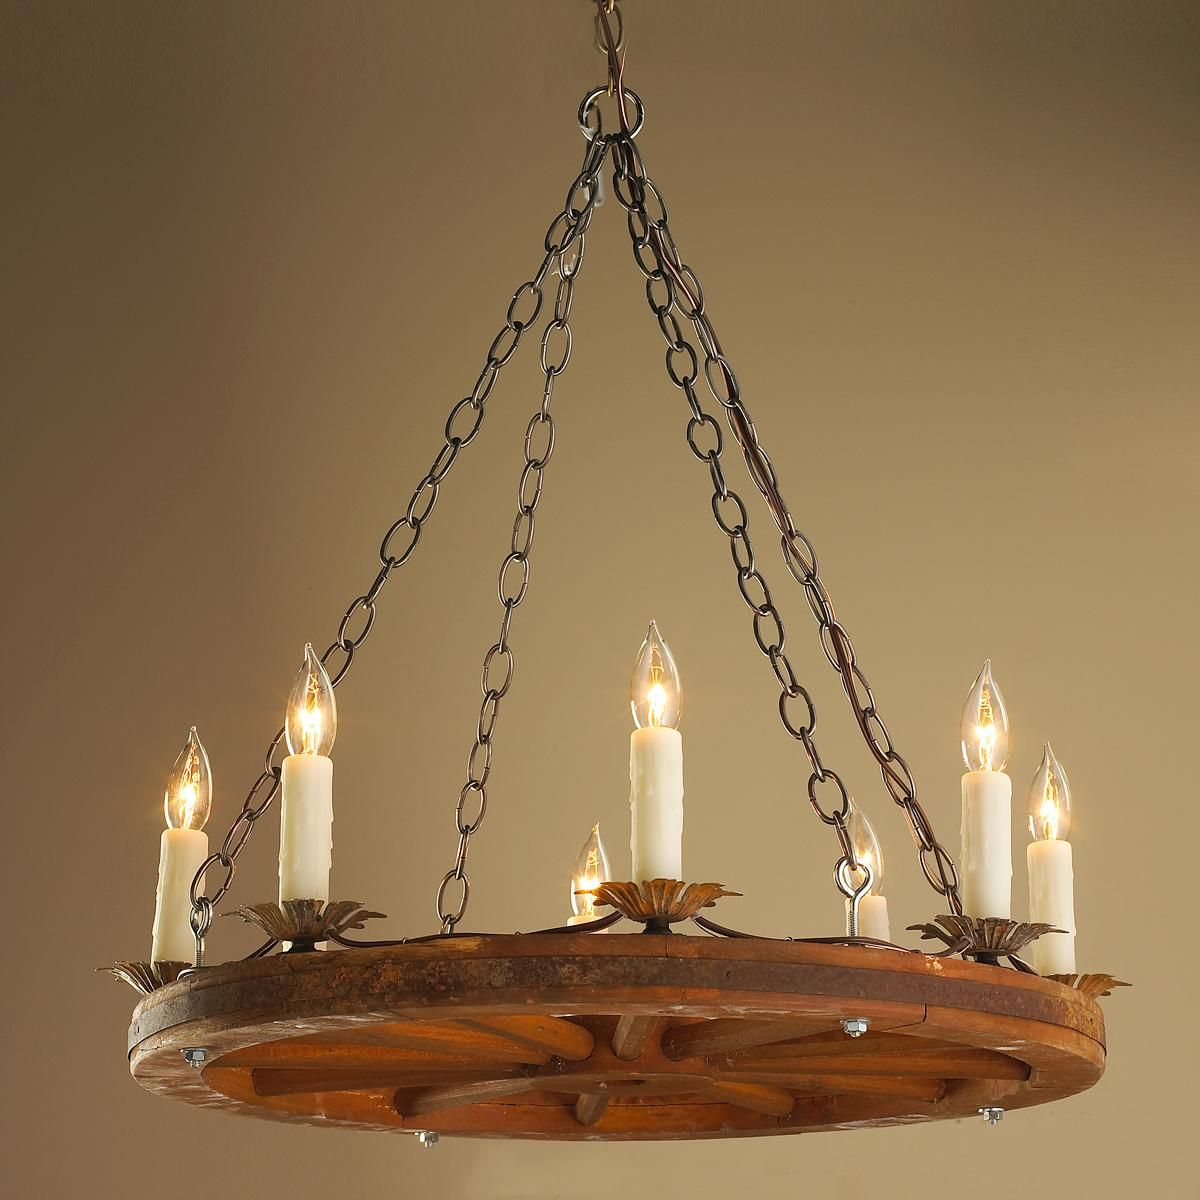 Antique 24 inch wagon wheel chandelier for the home pinterest antique 24 inch wagon wheel chandelier arubaitofo Image collections